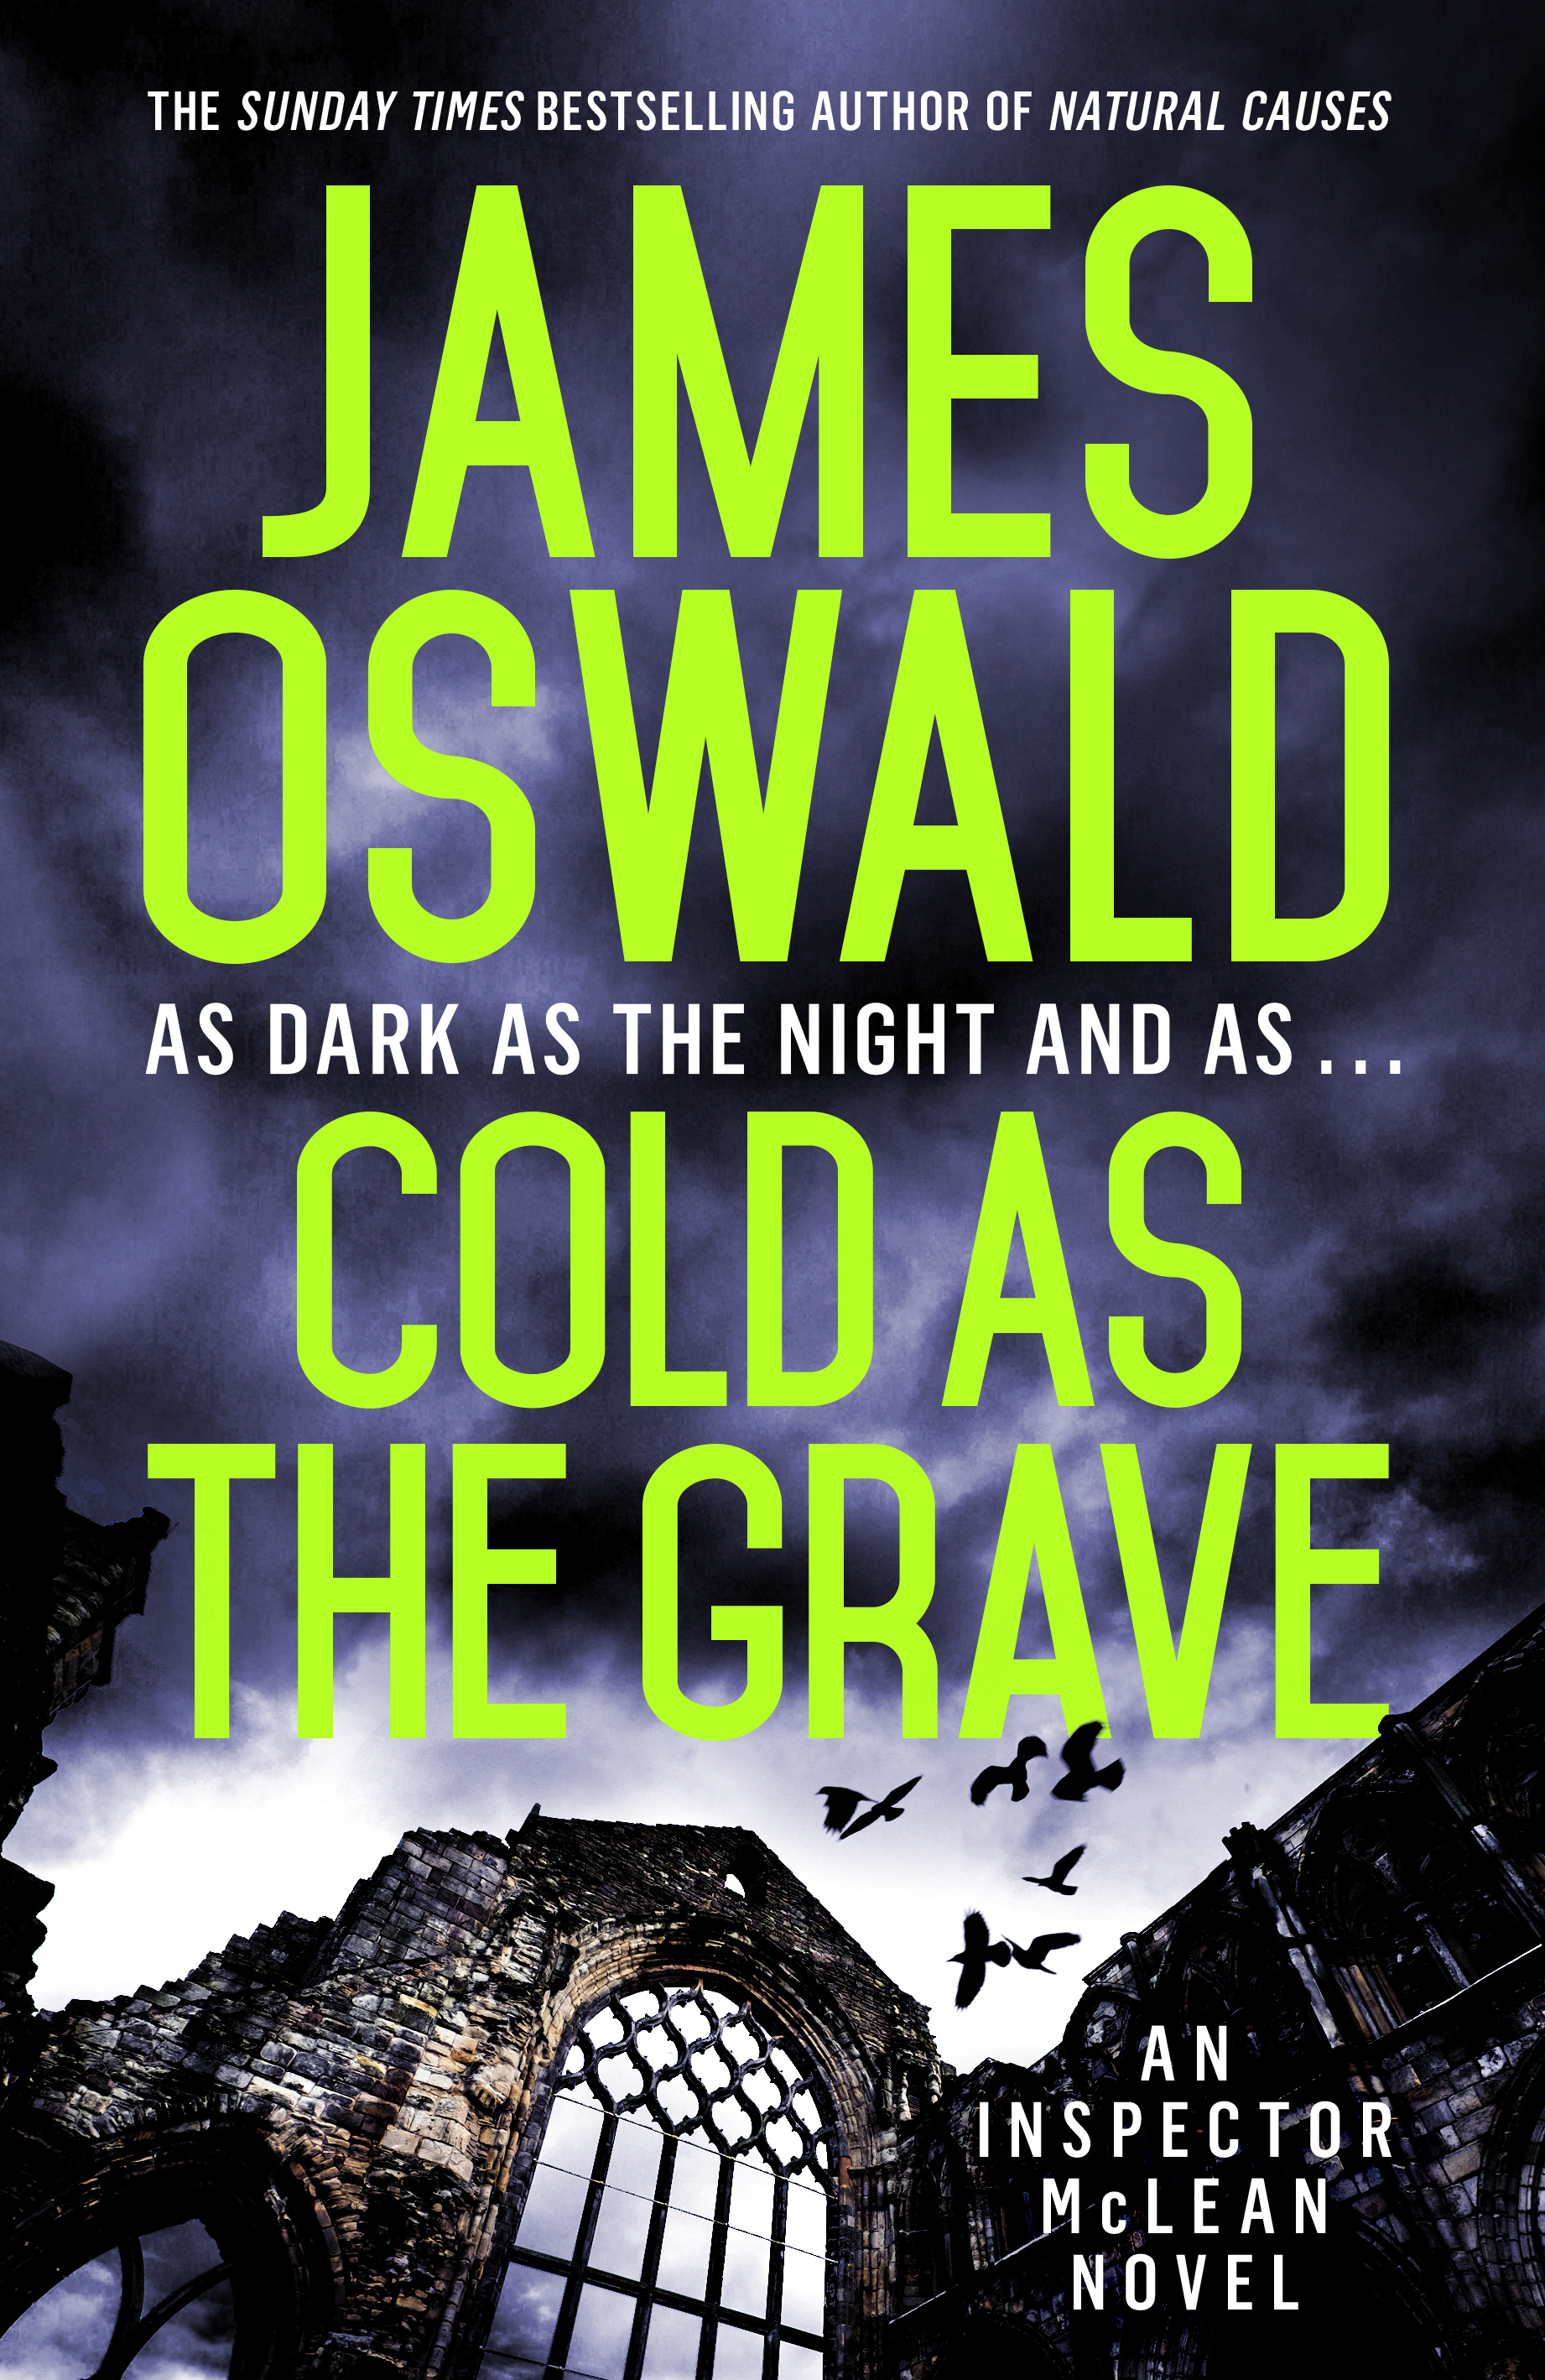 Cover image for Cold As The Grave by James OSwald